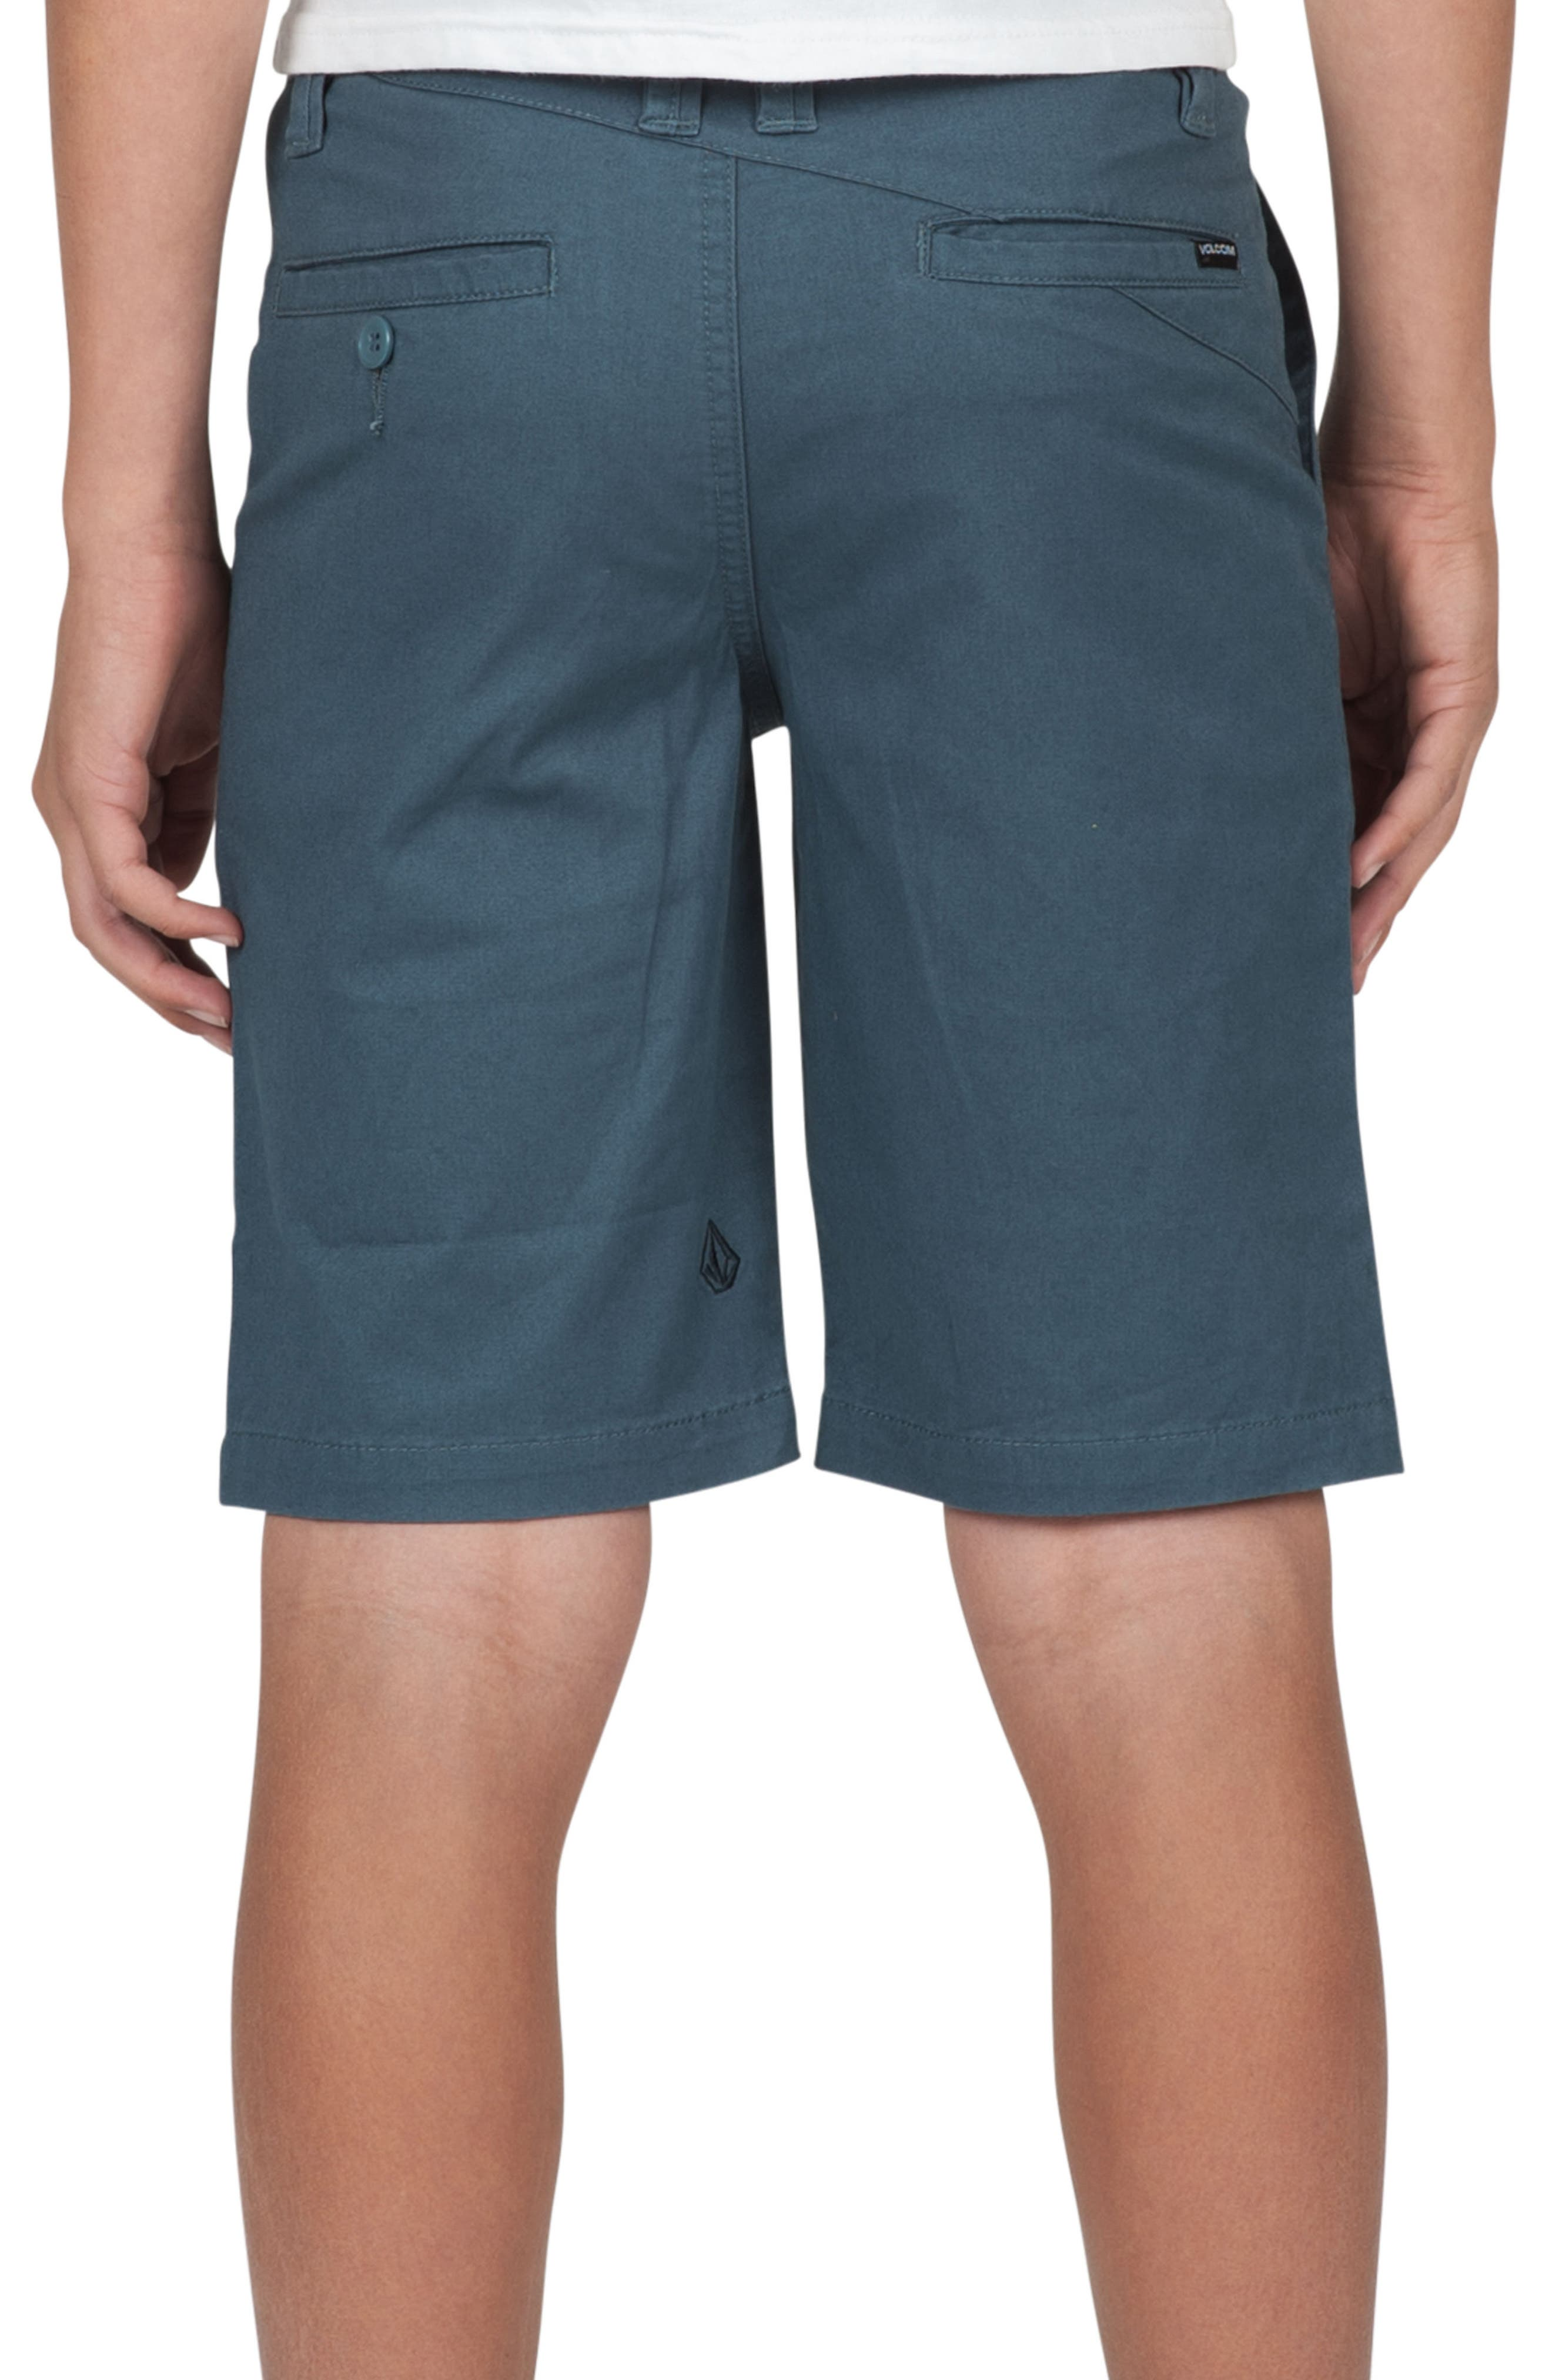 Alternate Image 2  - Volcom Cotton Twill Shorts (Toddler Boys, Little Boys & Big Boys)